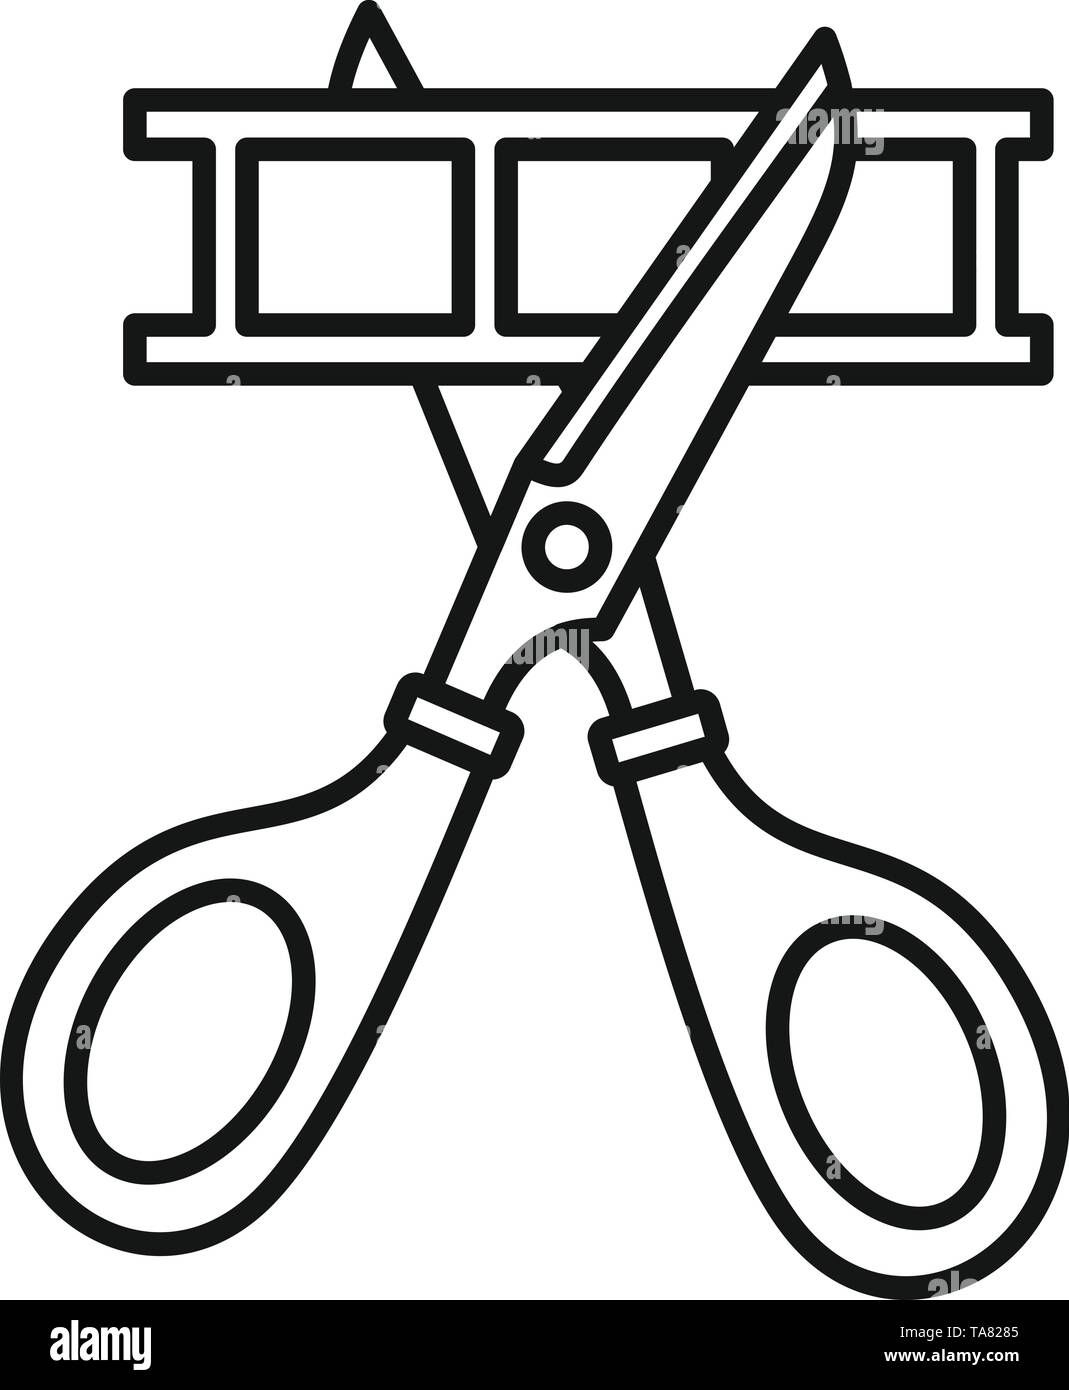 Scissors cut film icon. Outline scissors cut film vector icon for web design isolated on white background - Stock Image